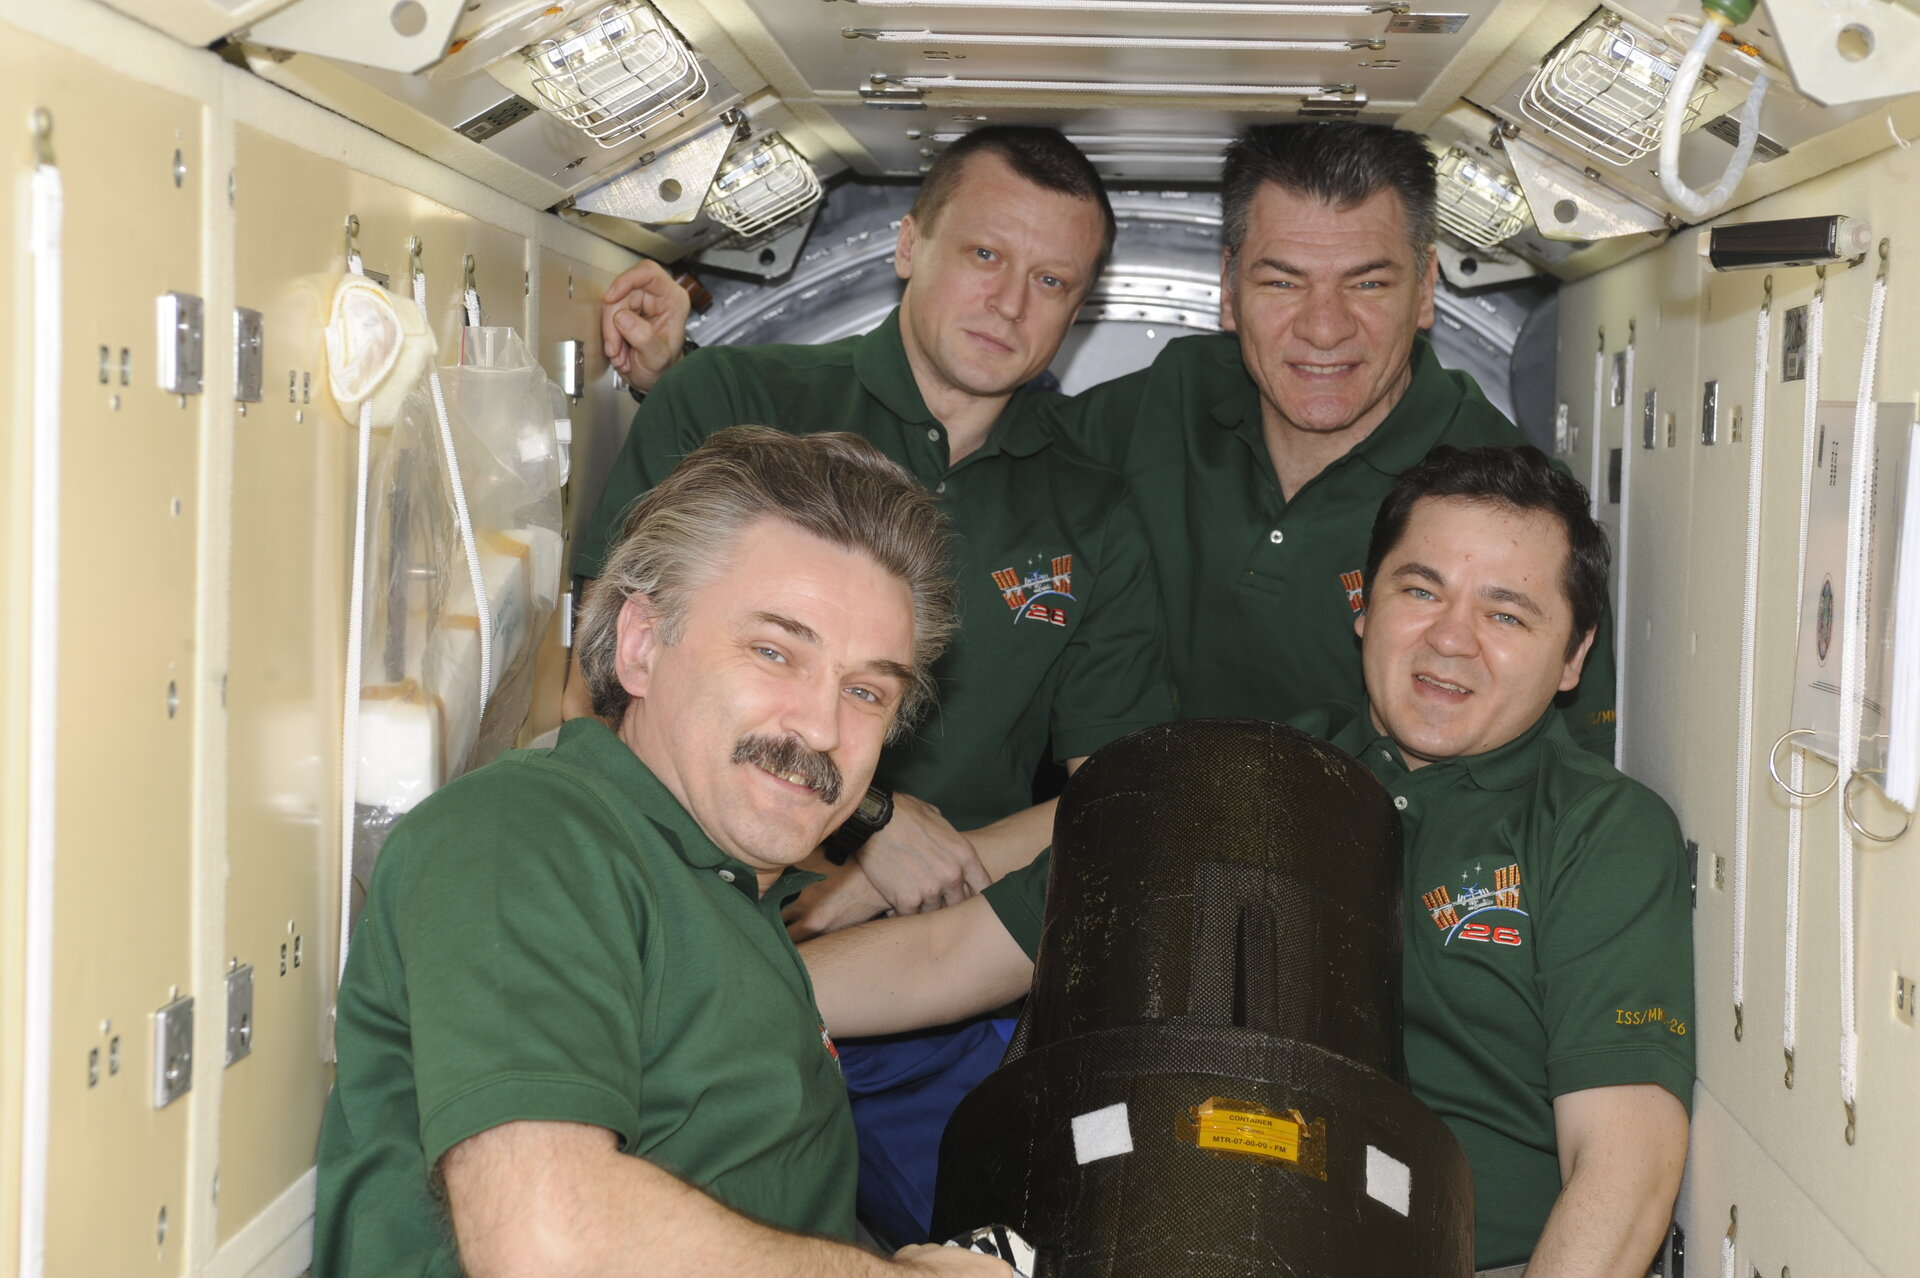 ISS crew working with Matroshka